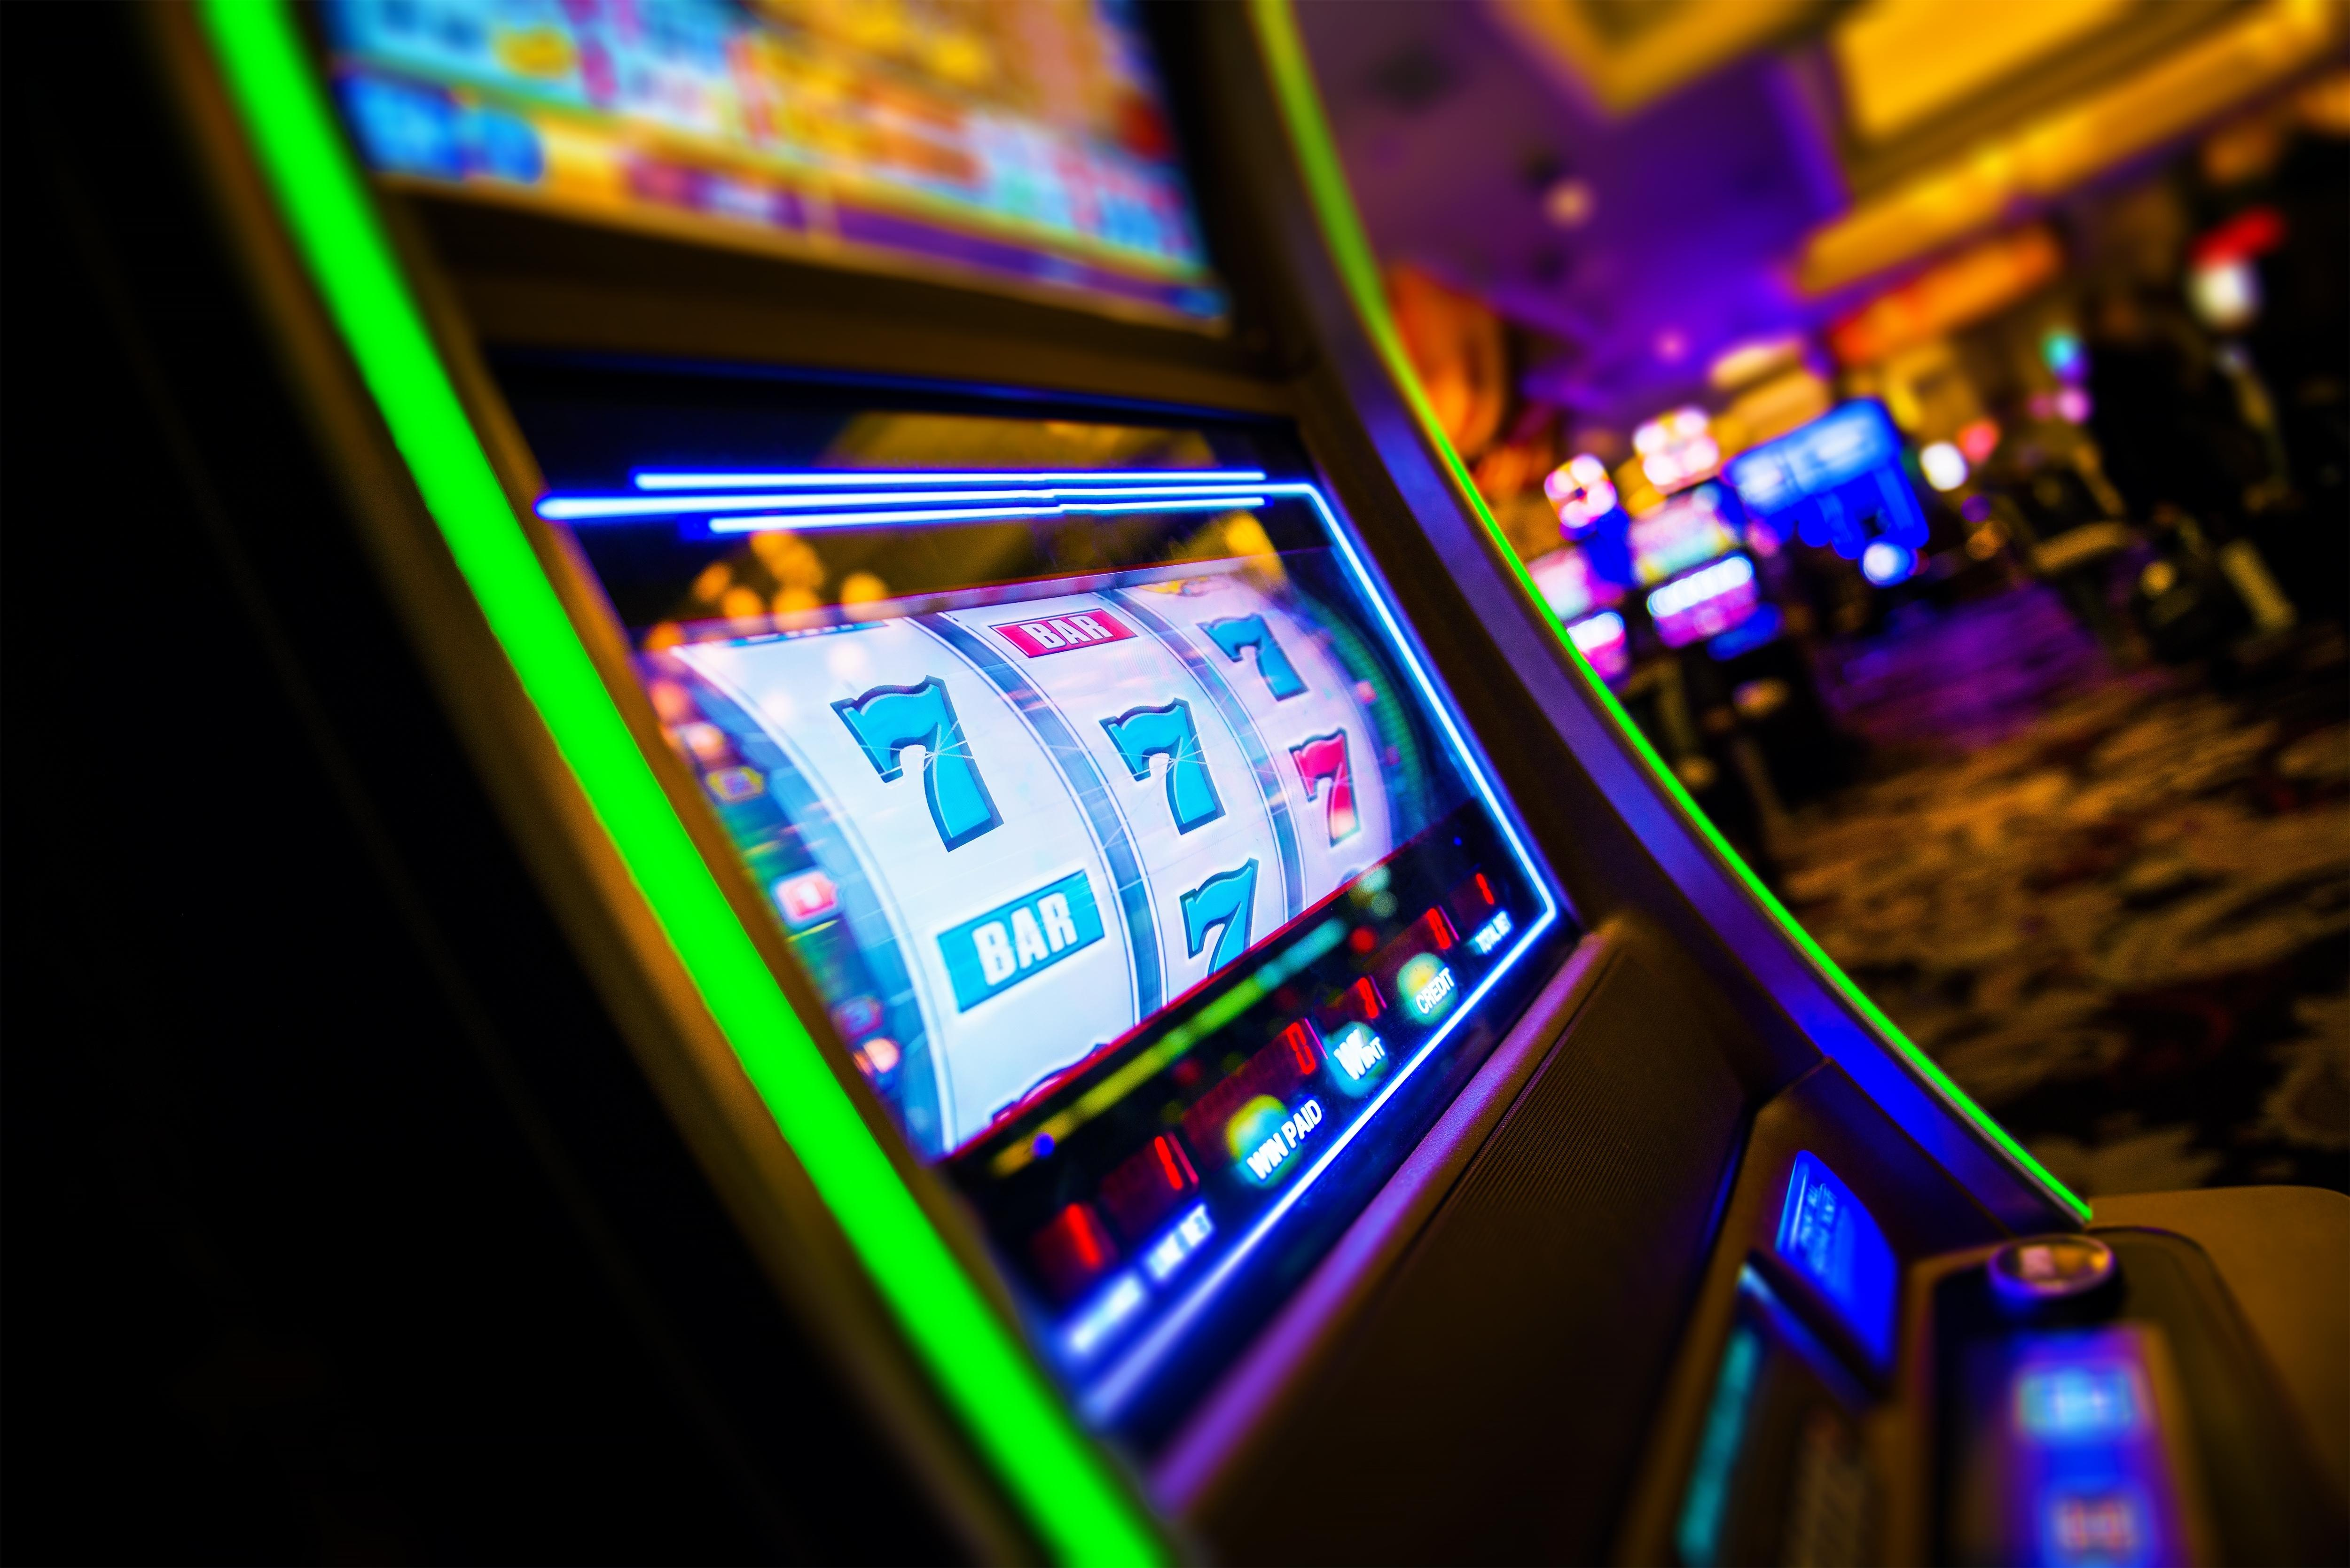 Best slot machines to play at rivers casino parasite eve 2 psx save game